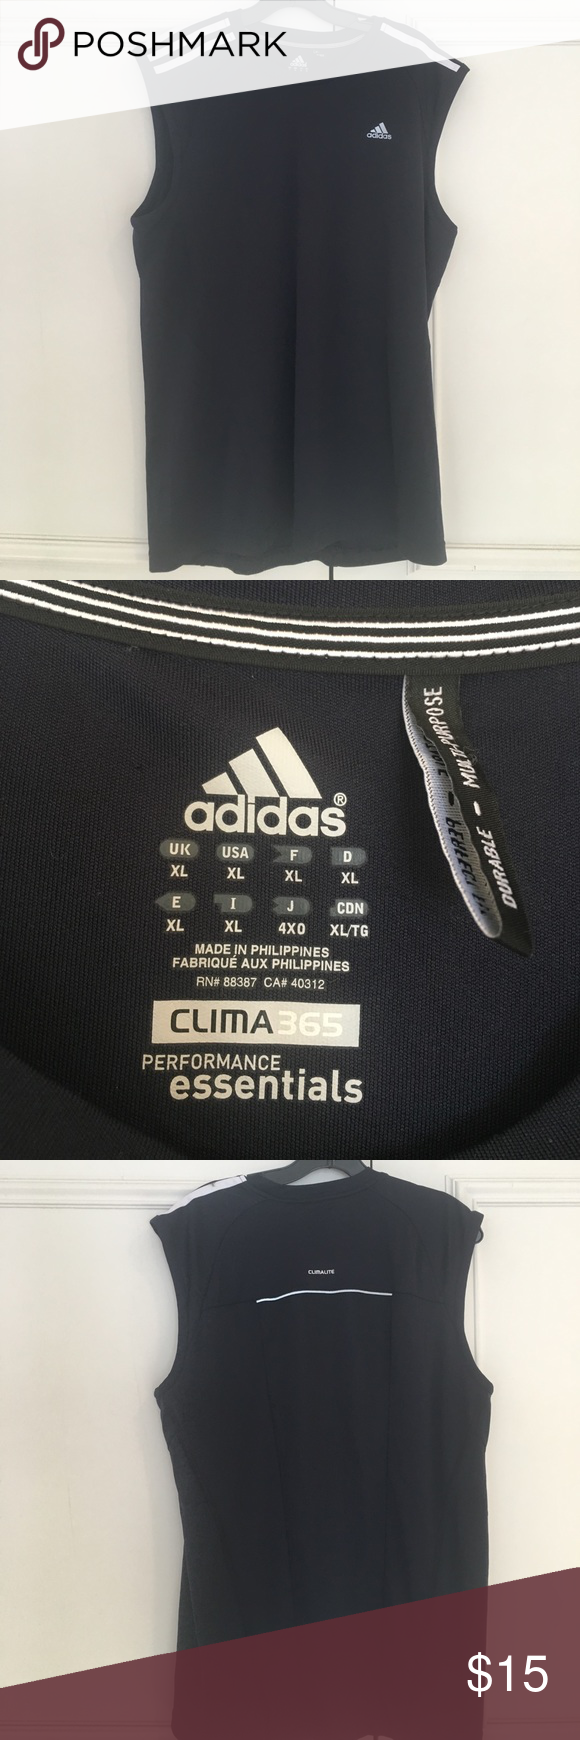 Adidas Clima 365 Performance Essentials T Shirt | RLDM